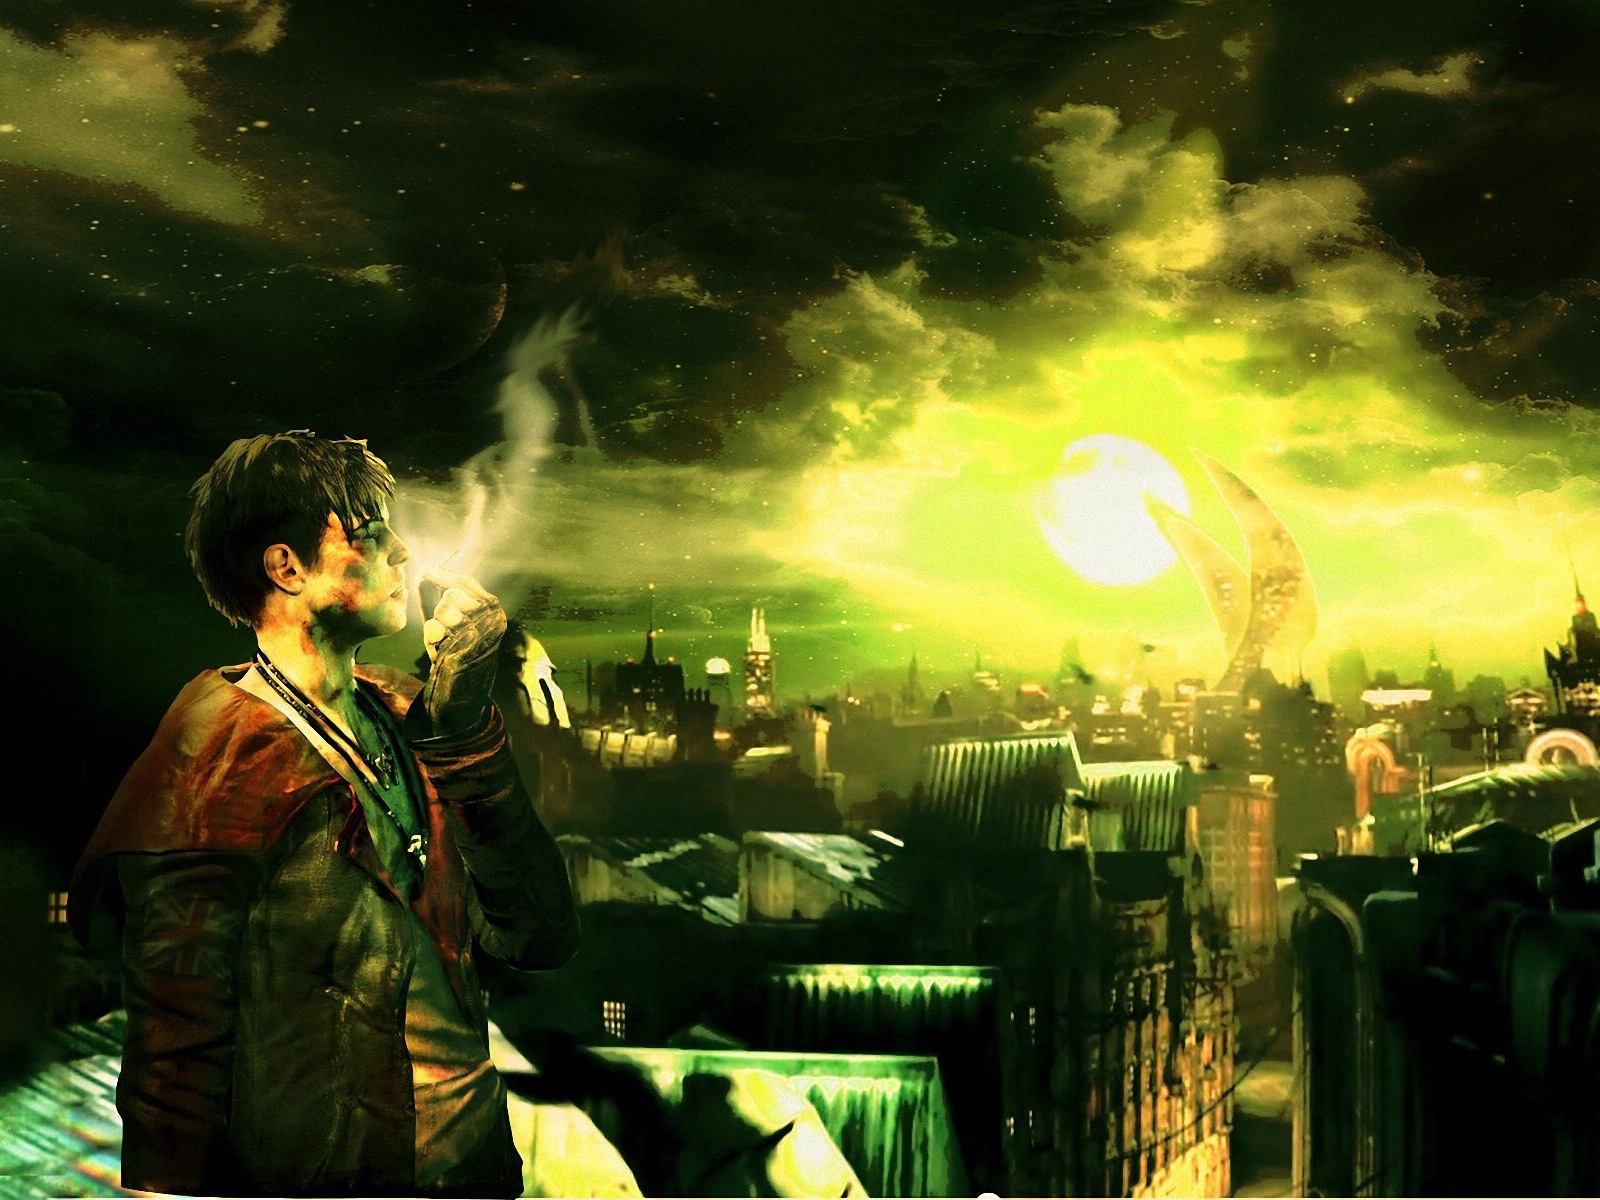 Devil may cry 5 night wallpapers devil may cry 5 night stock photos devil may cry 5 night wallpapers and stock photos voltagebd Gallery